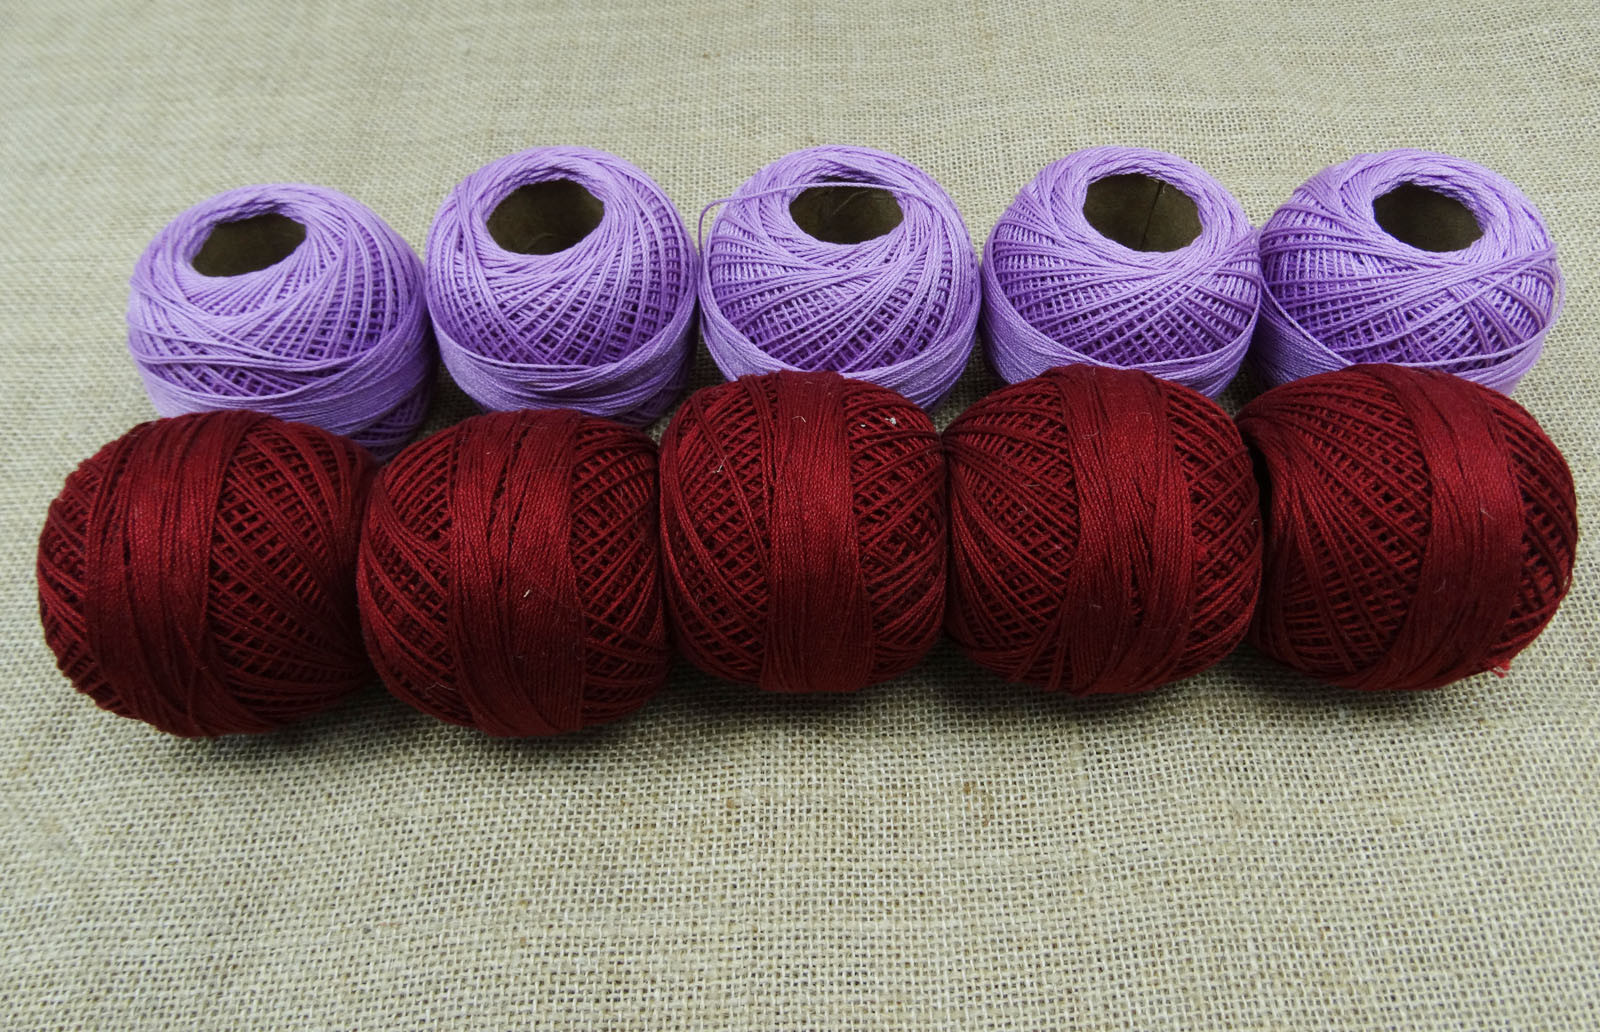 Indian Crochet Cotton Yarn Embroidery Knitting Skein